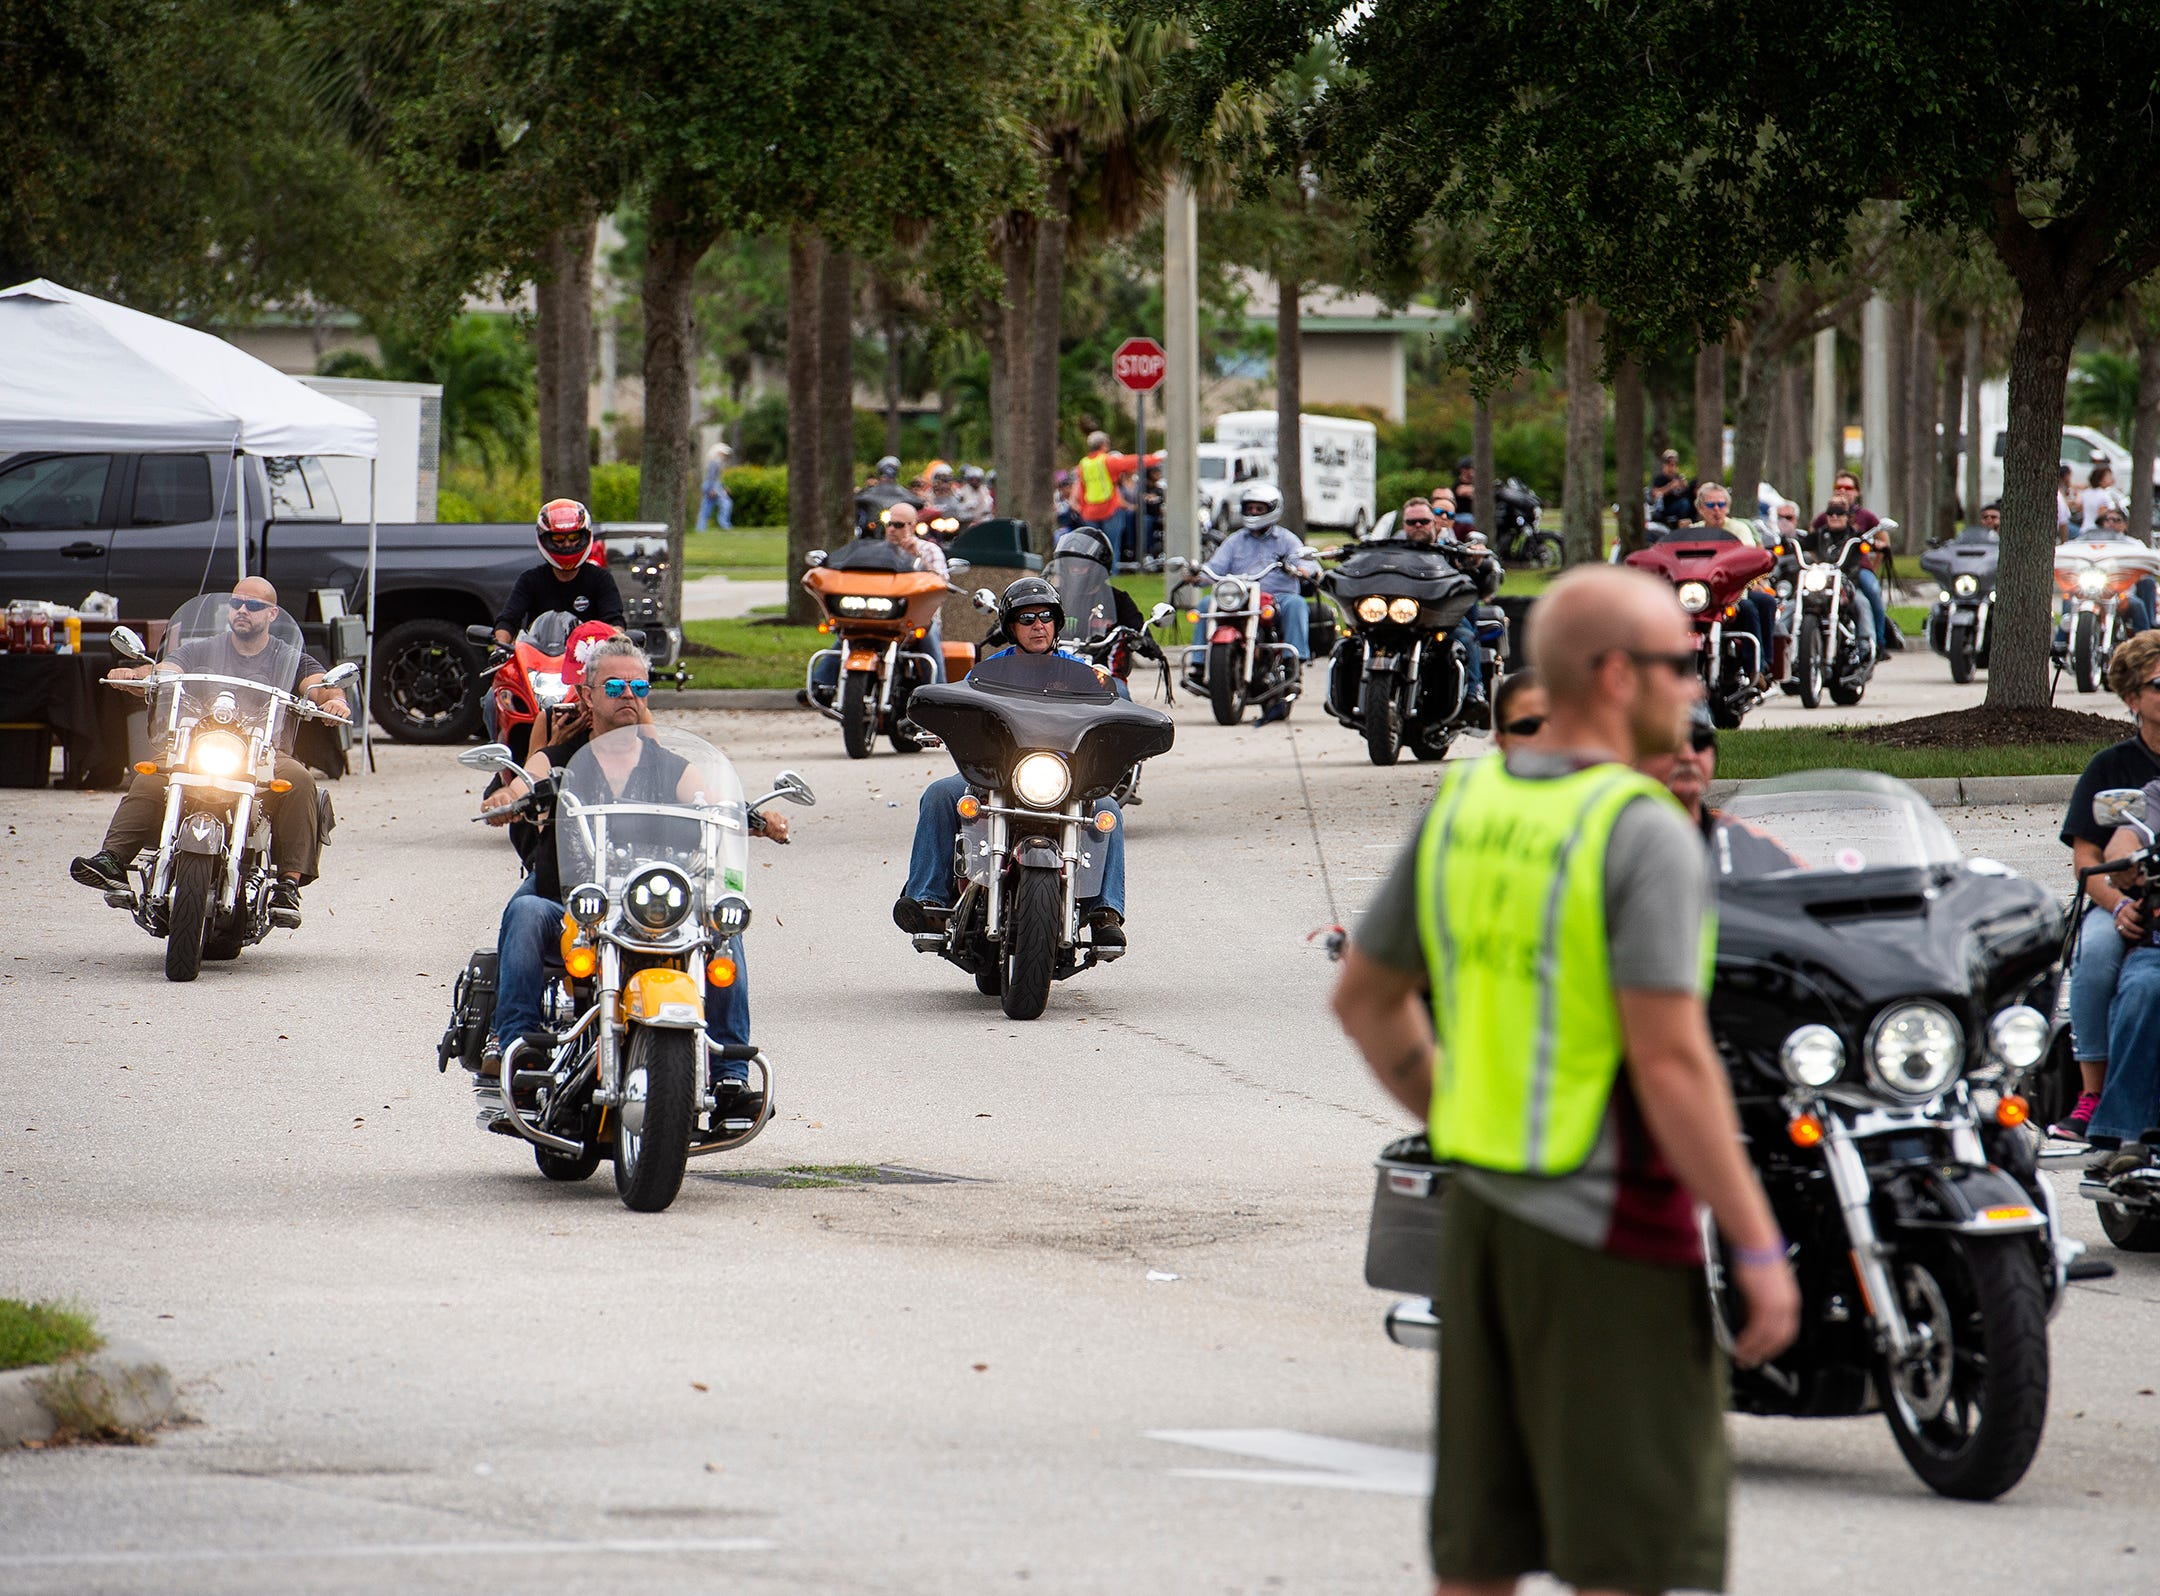 The Bikers for Babies fundraiser in Naples, Fla., on Sunday, Nov. 4, 2018, saw thousands of motorcyclists take to the streets of Southwest Florida to rally for the health of all moms and babies in one of the largest fundraisers for the March of Dimes.